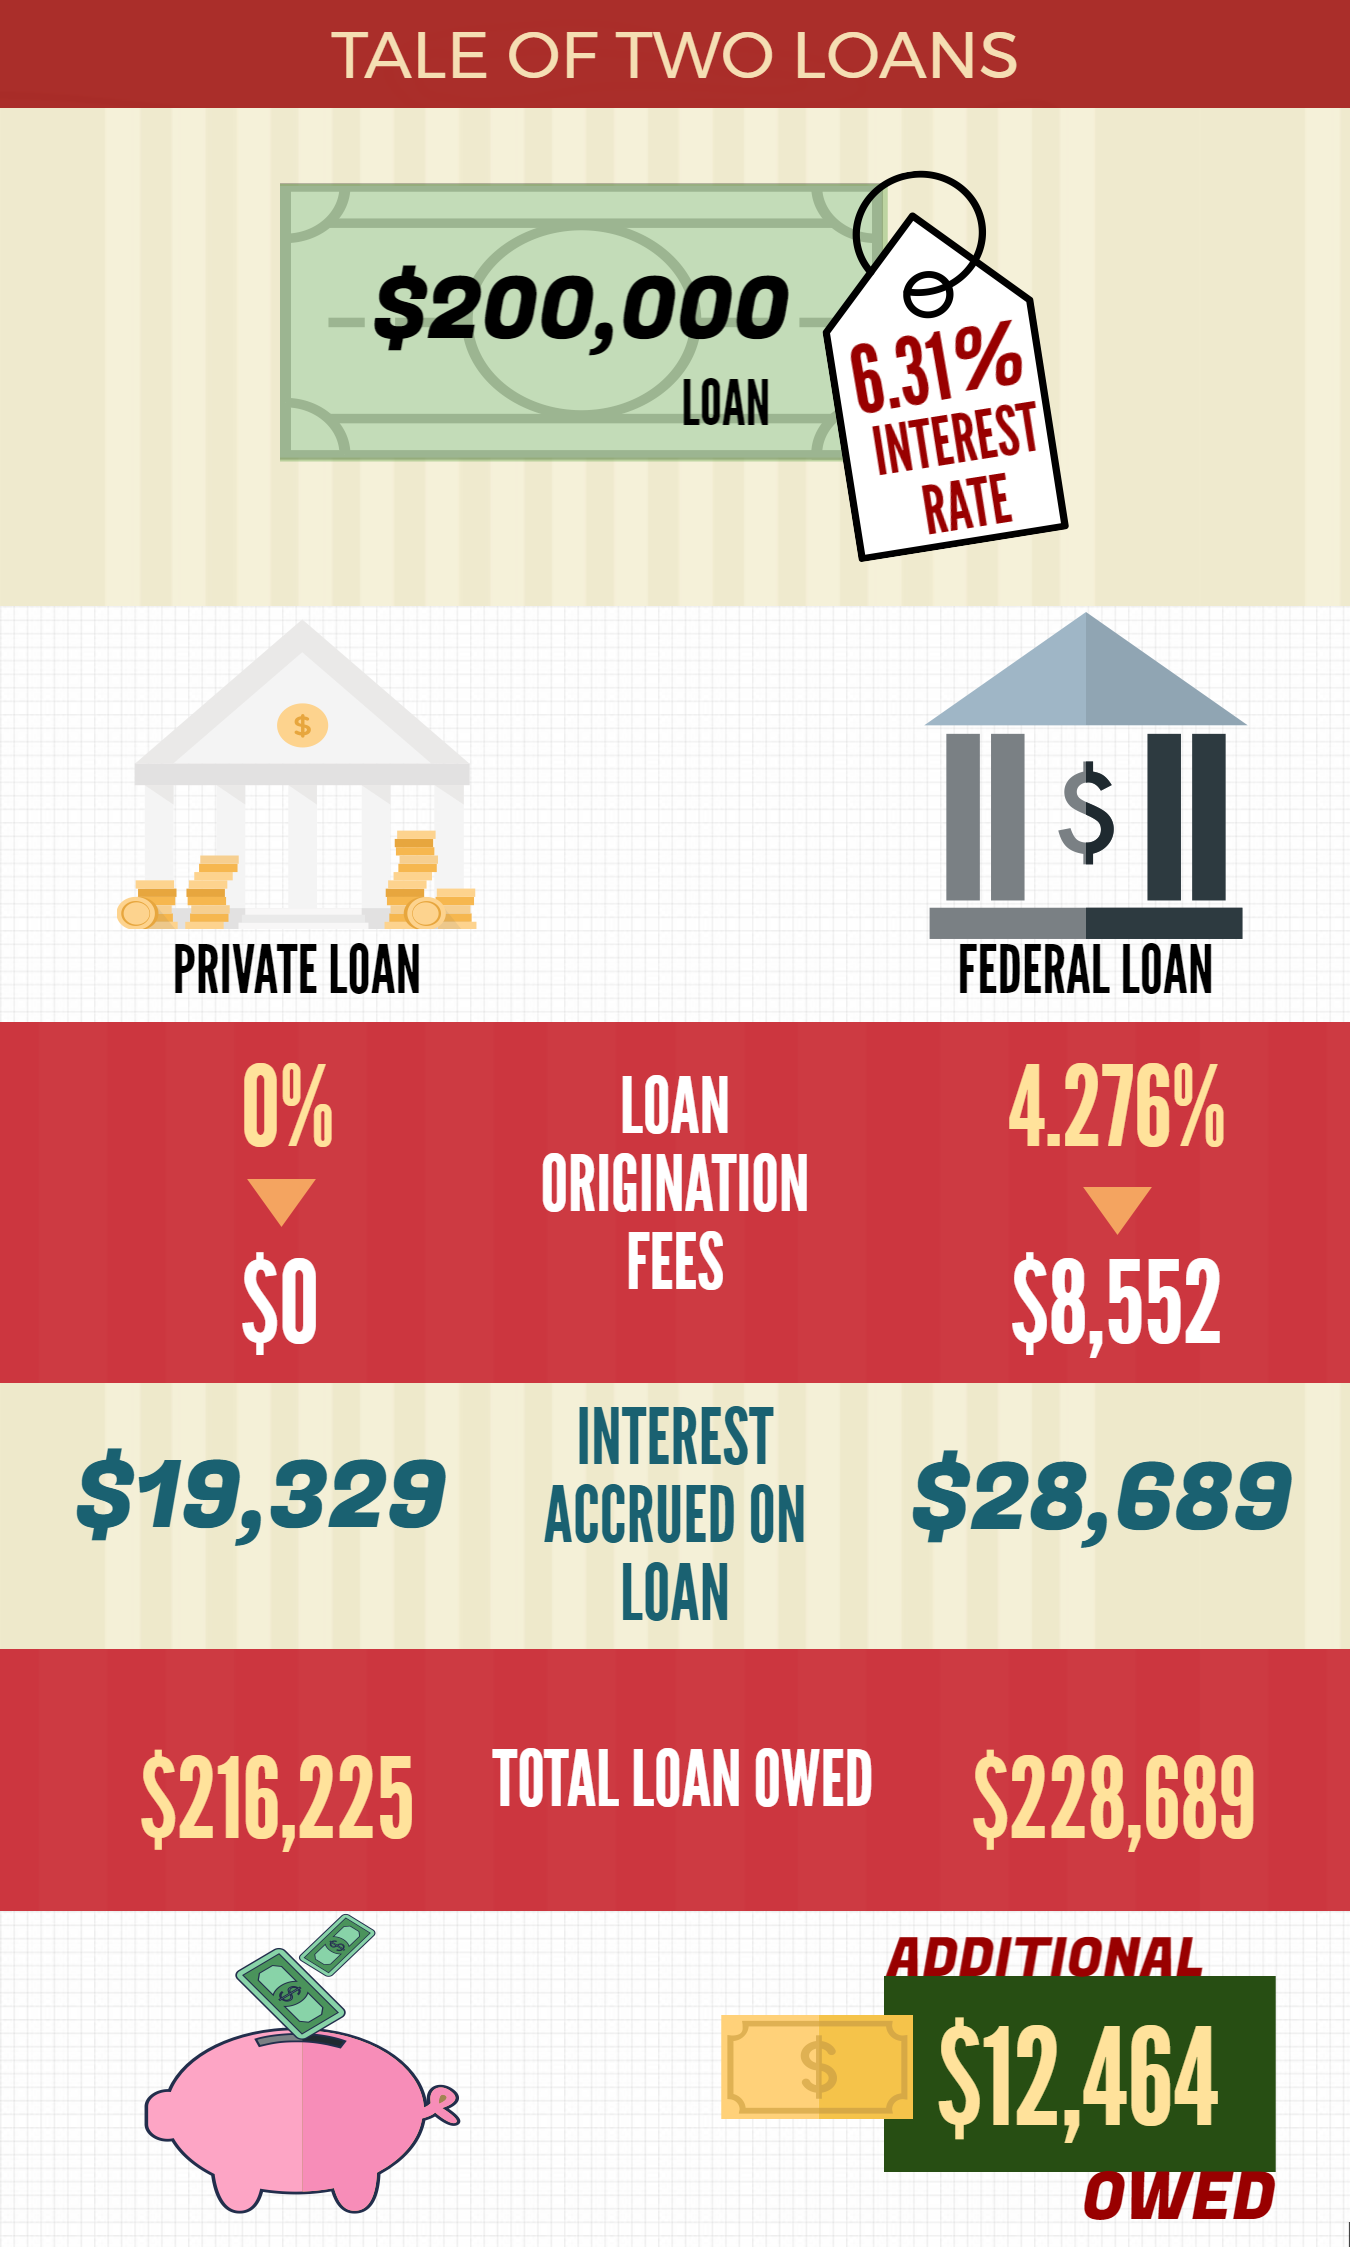 The hidden costs of Federal loans, origination fees